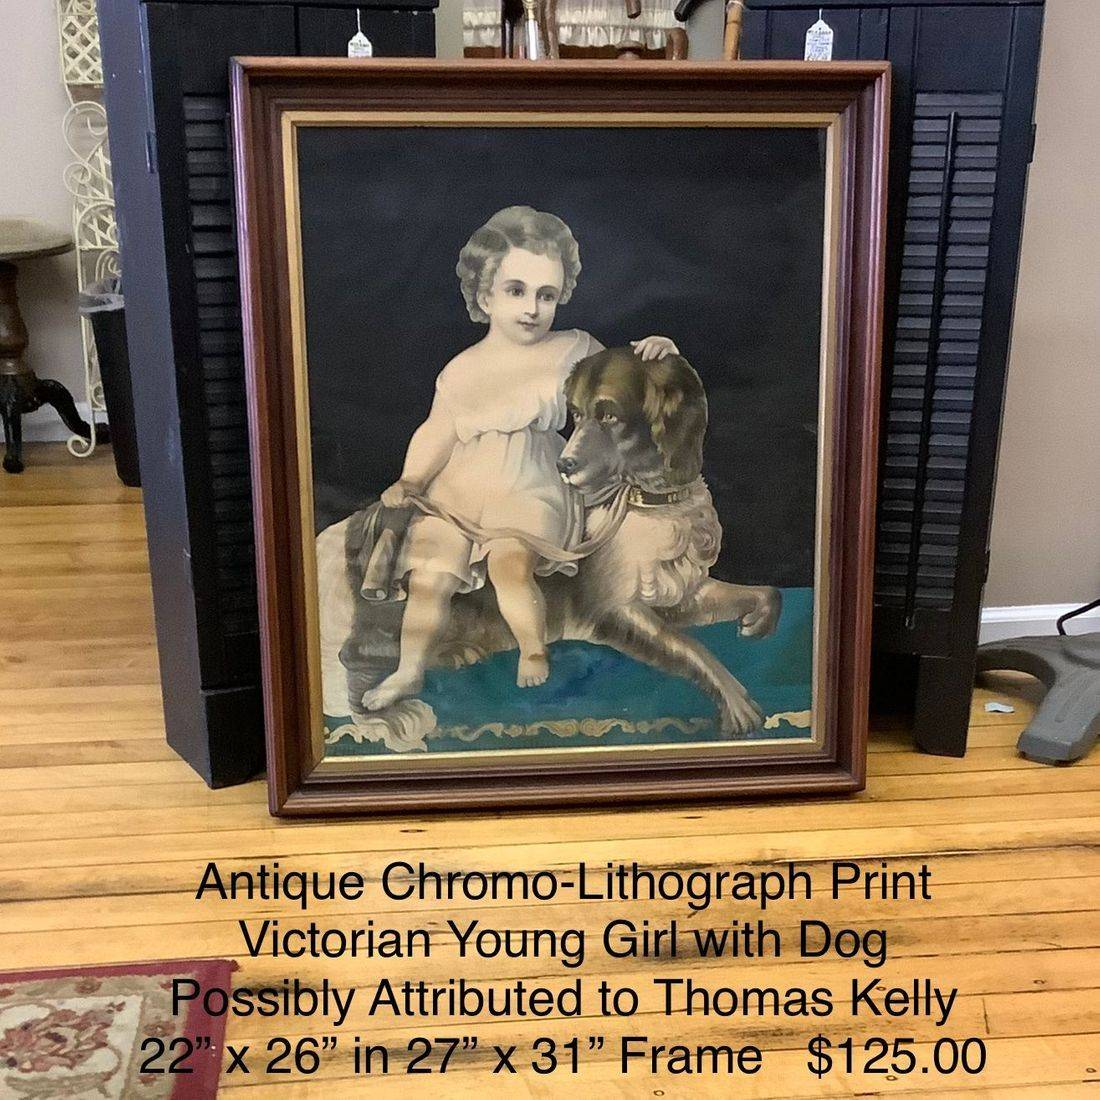 Antique Chromo-Lithograph Print 'Victorian Young Girl with Dog'  Possibly Attributed to Thomas Kelly   $125.00